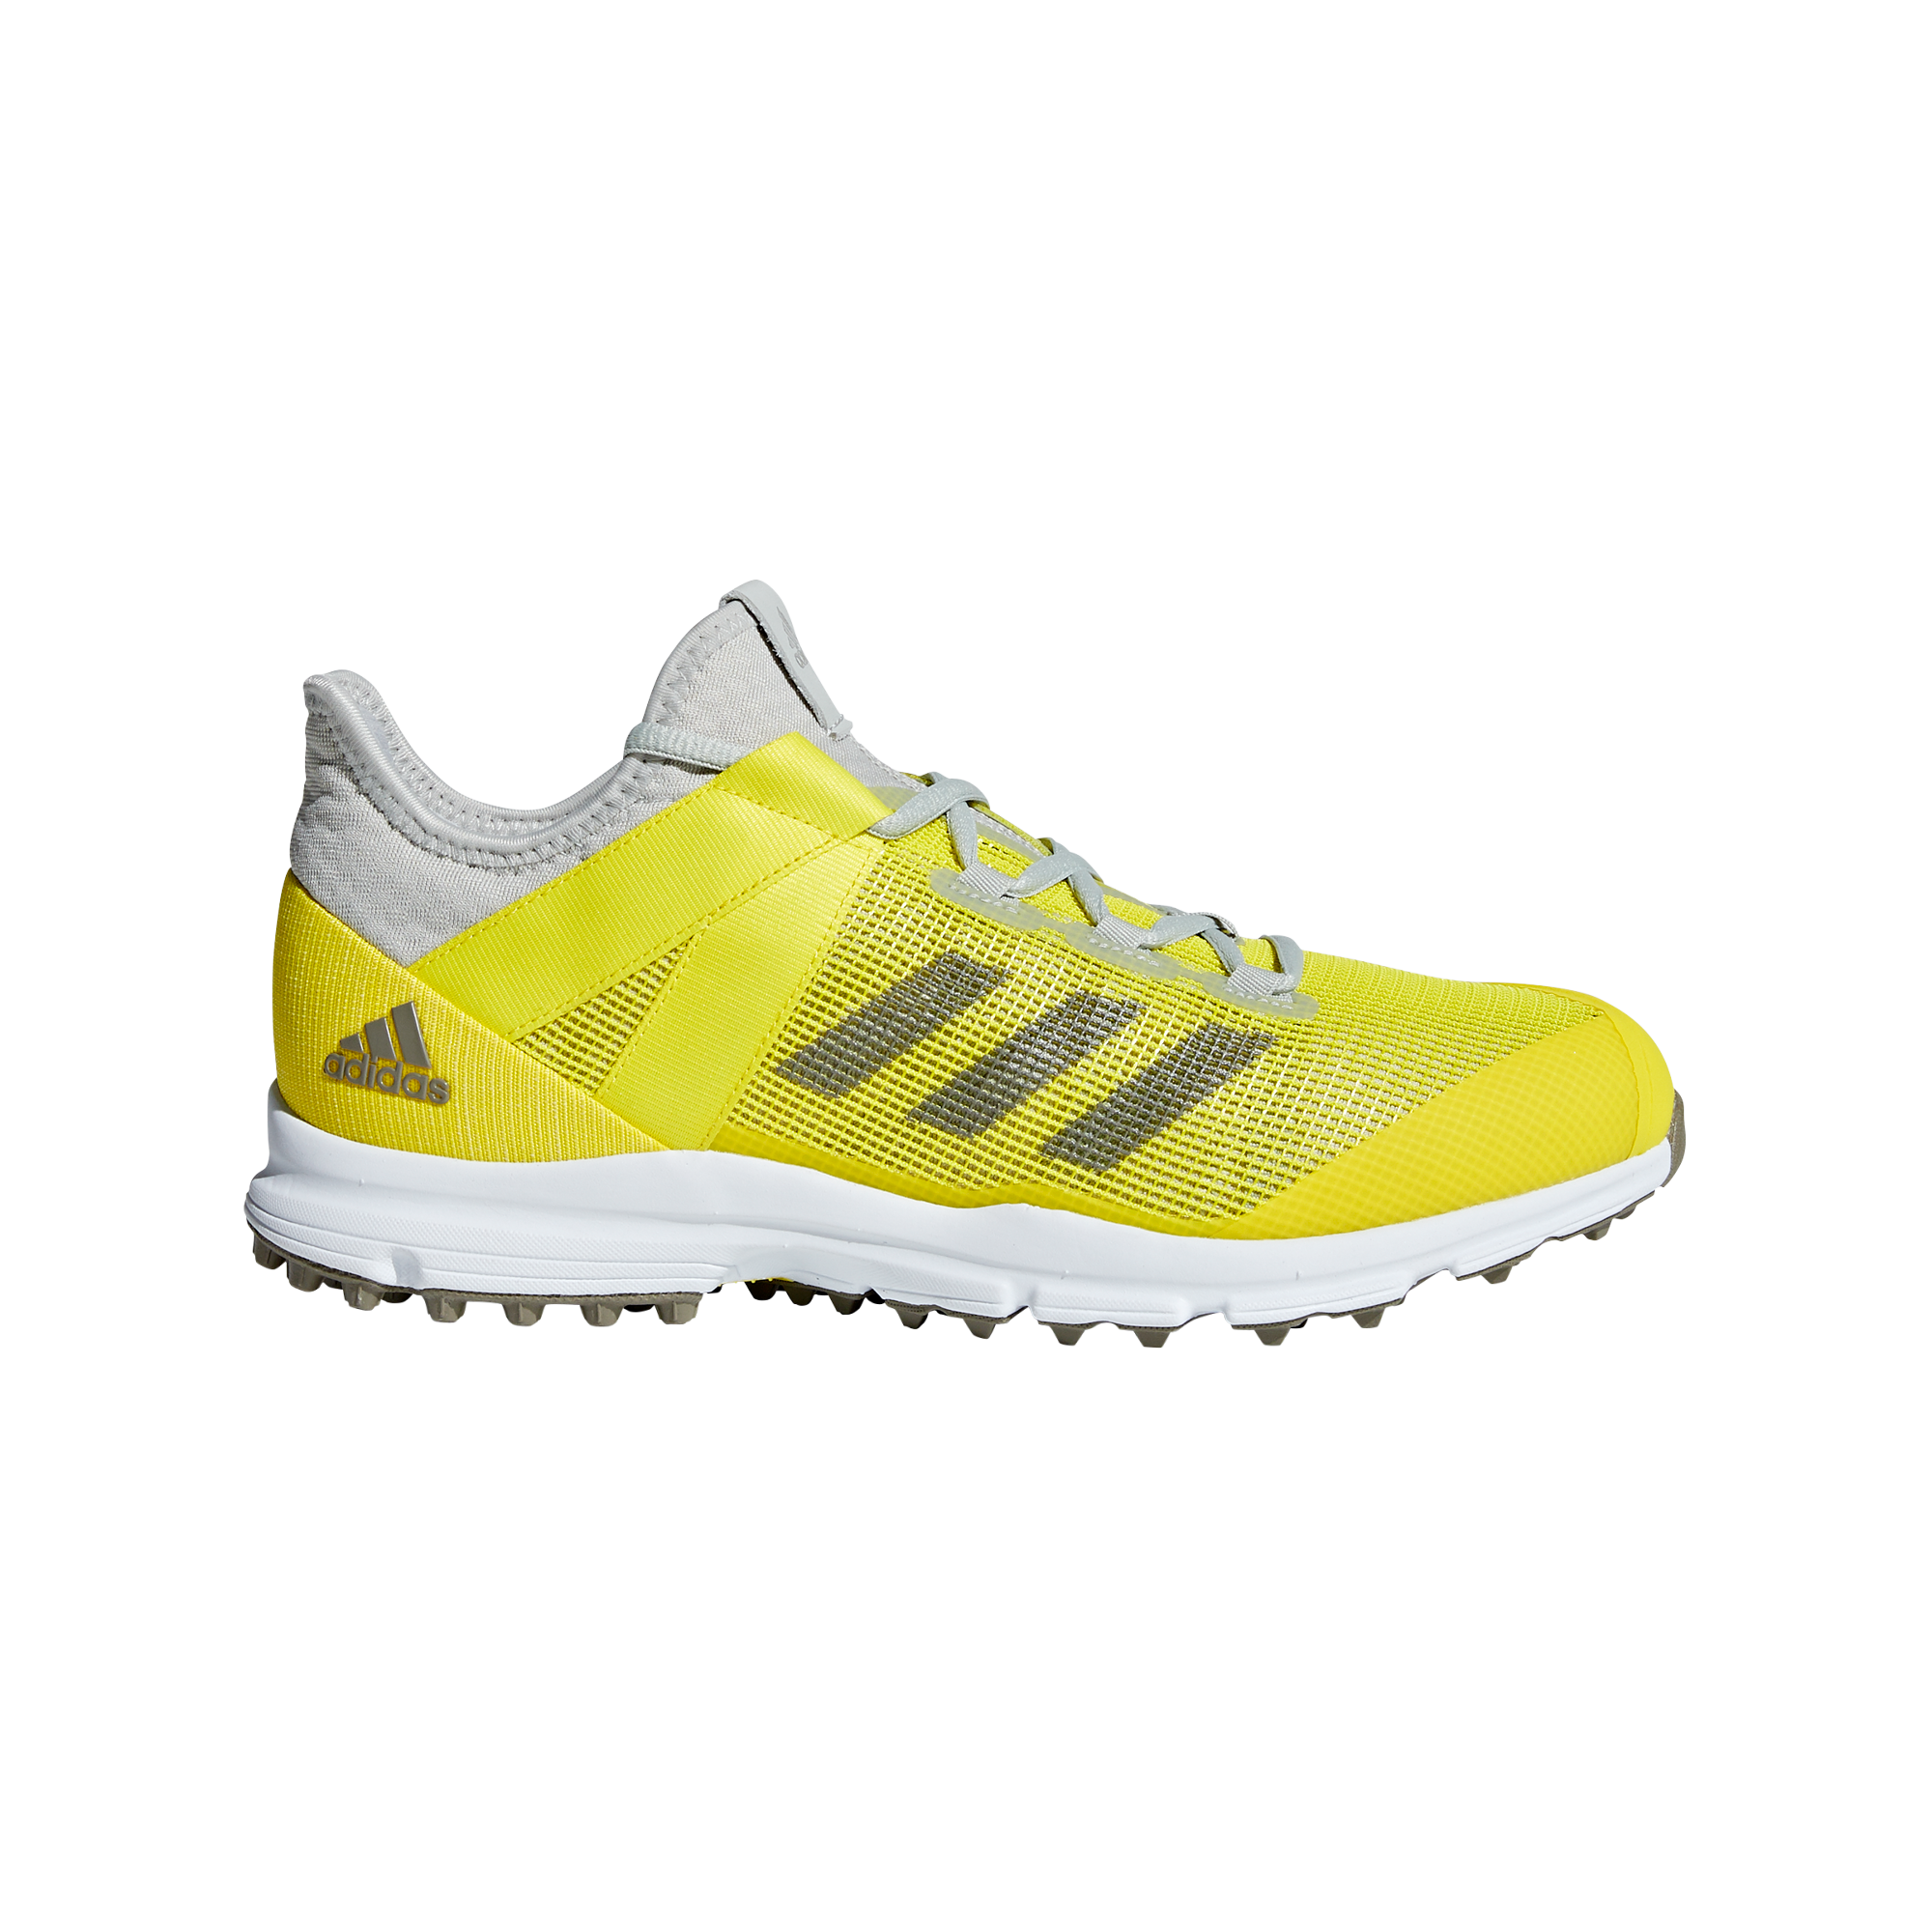 separation shoes 514e3 9c666 Adidas Zone Dox 1.9S Speed 2019 SilverWhiteYellow Hockey Shoes